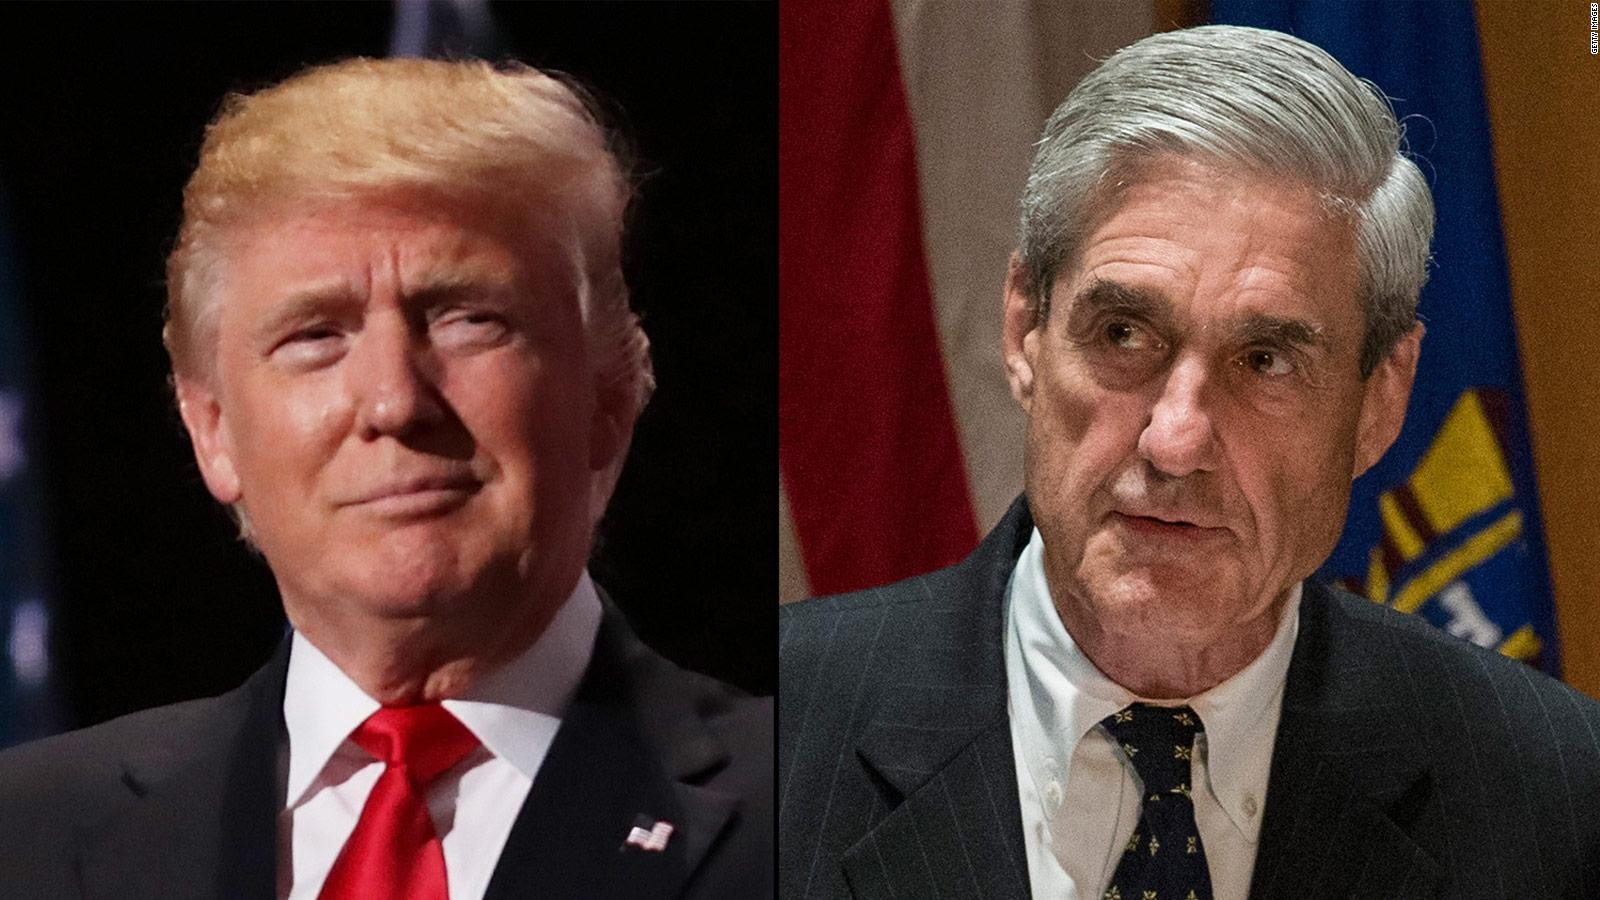 Image result for free image of mueller and trump